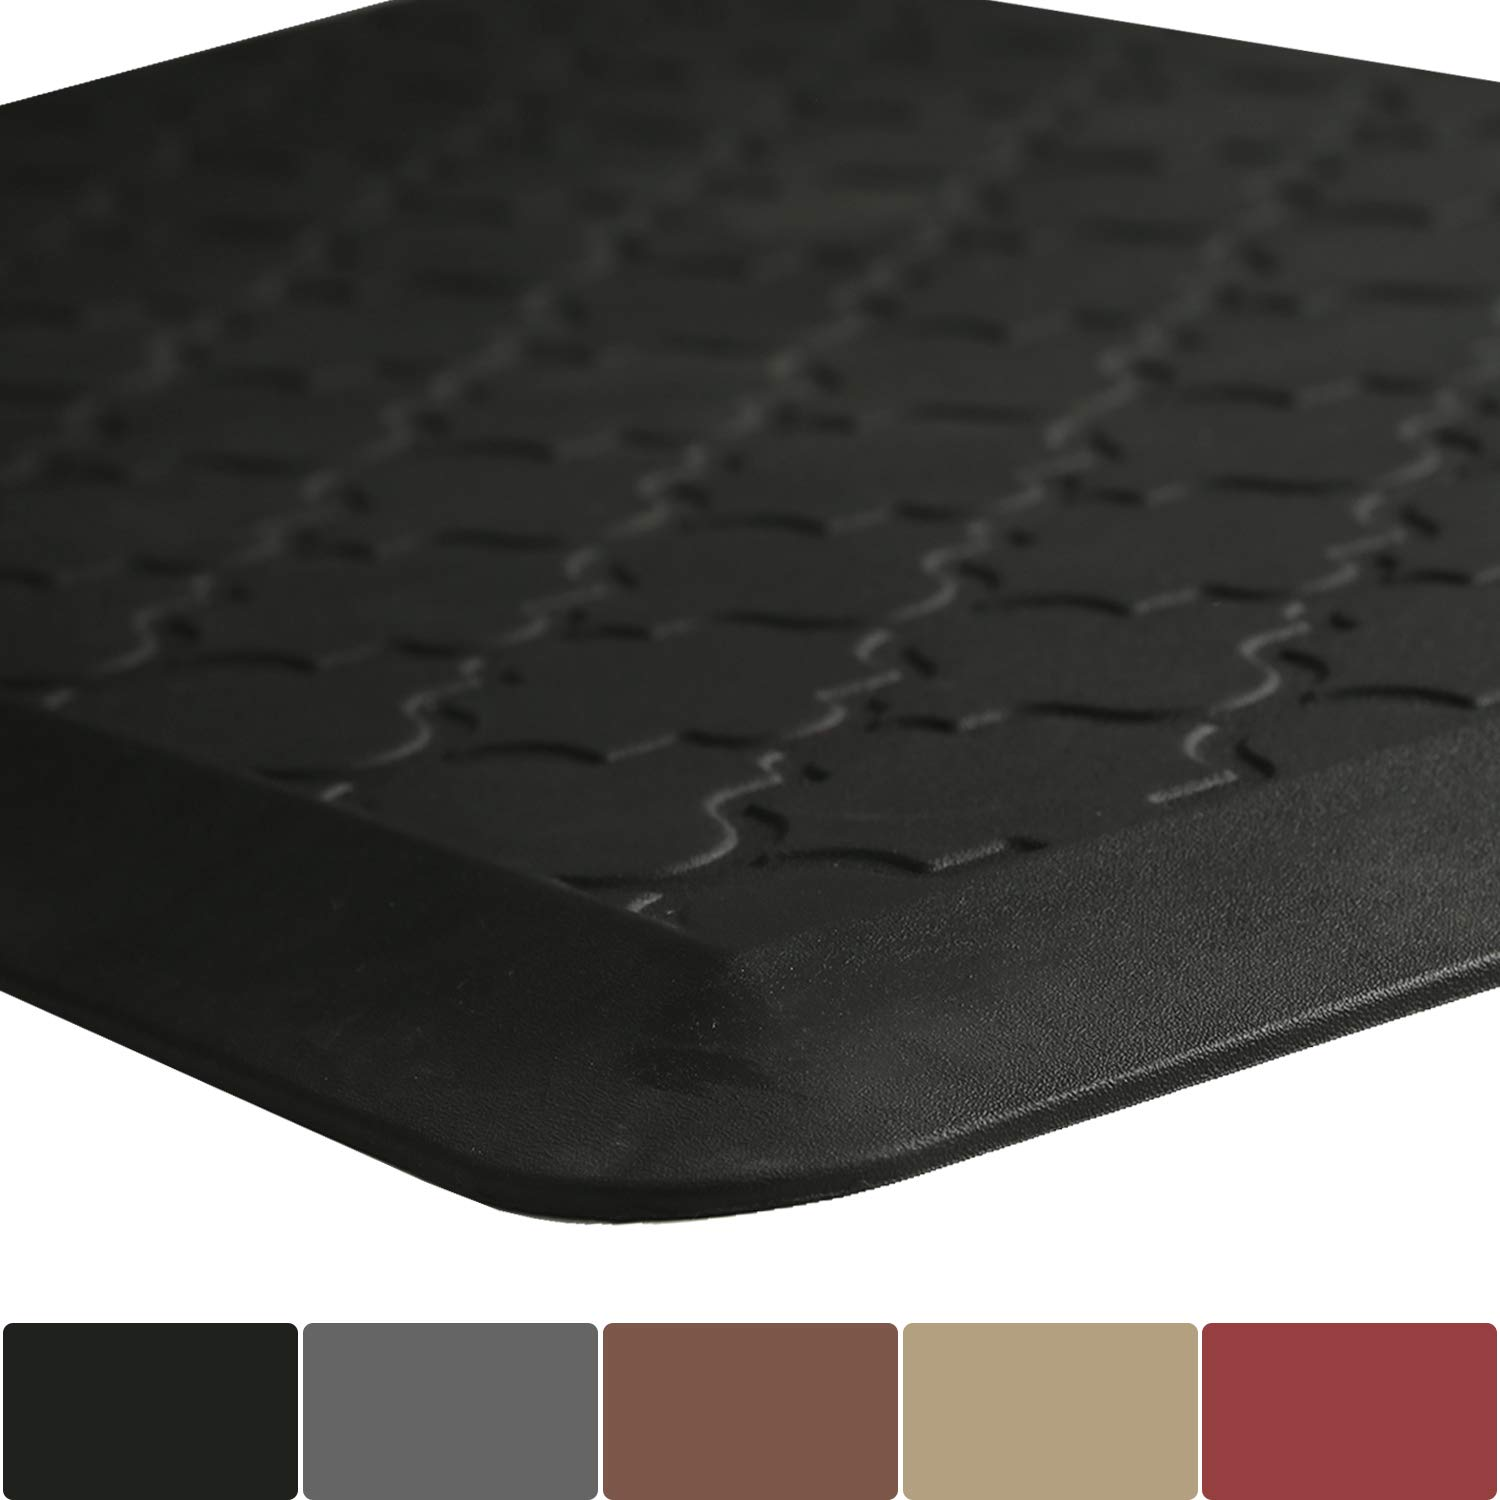 Anti Fatigue Standing Desk Mat 48 x 20 Inch, Kitchen Mat and Rugs Thick 3/4'' Cushioned Ergonomically Engineered Comfort Floor Mat, Black by FRESHMINT